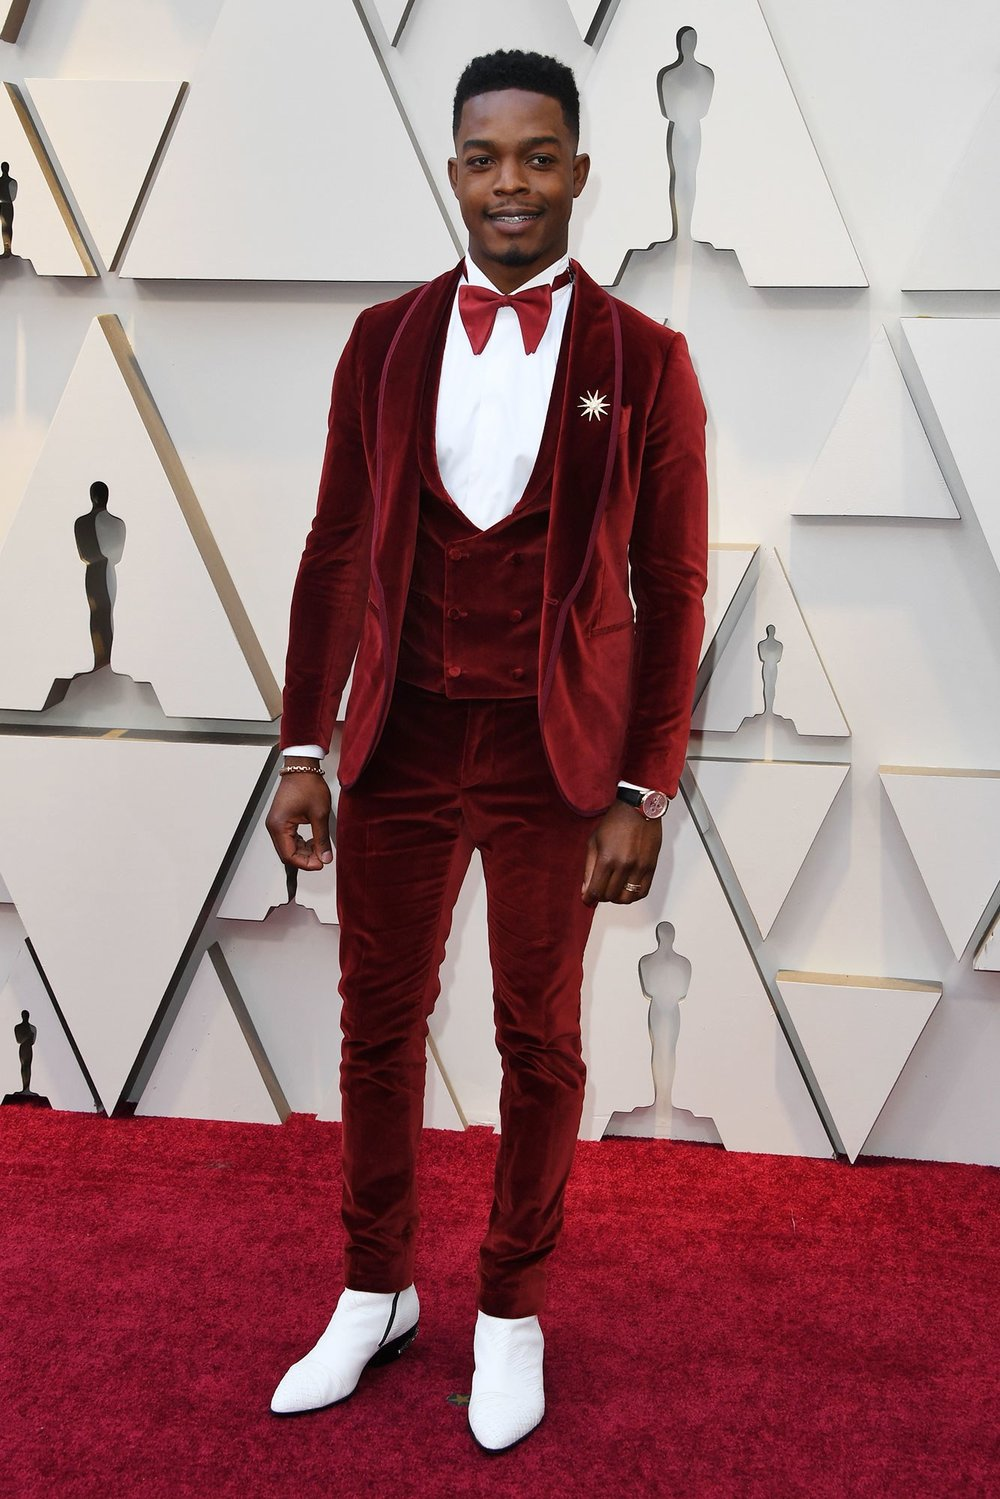 STEPHAN JAMES - ETRO: This Canadian boy is killing it! Red velvet, lapel pin and white boots! Love!